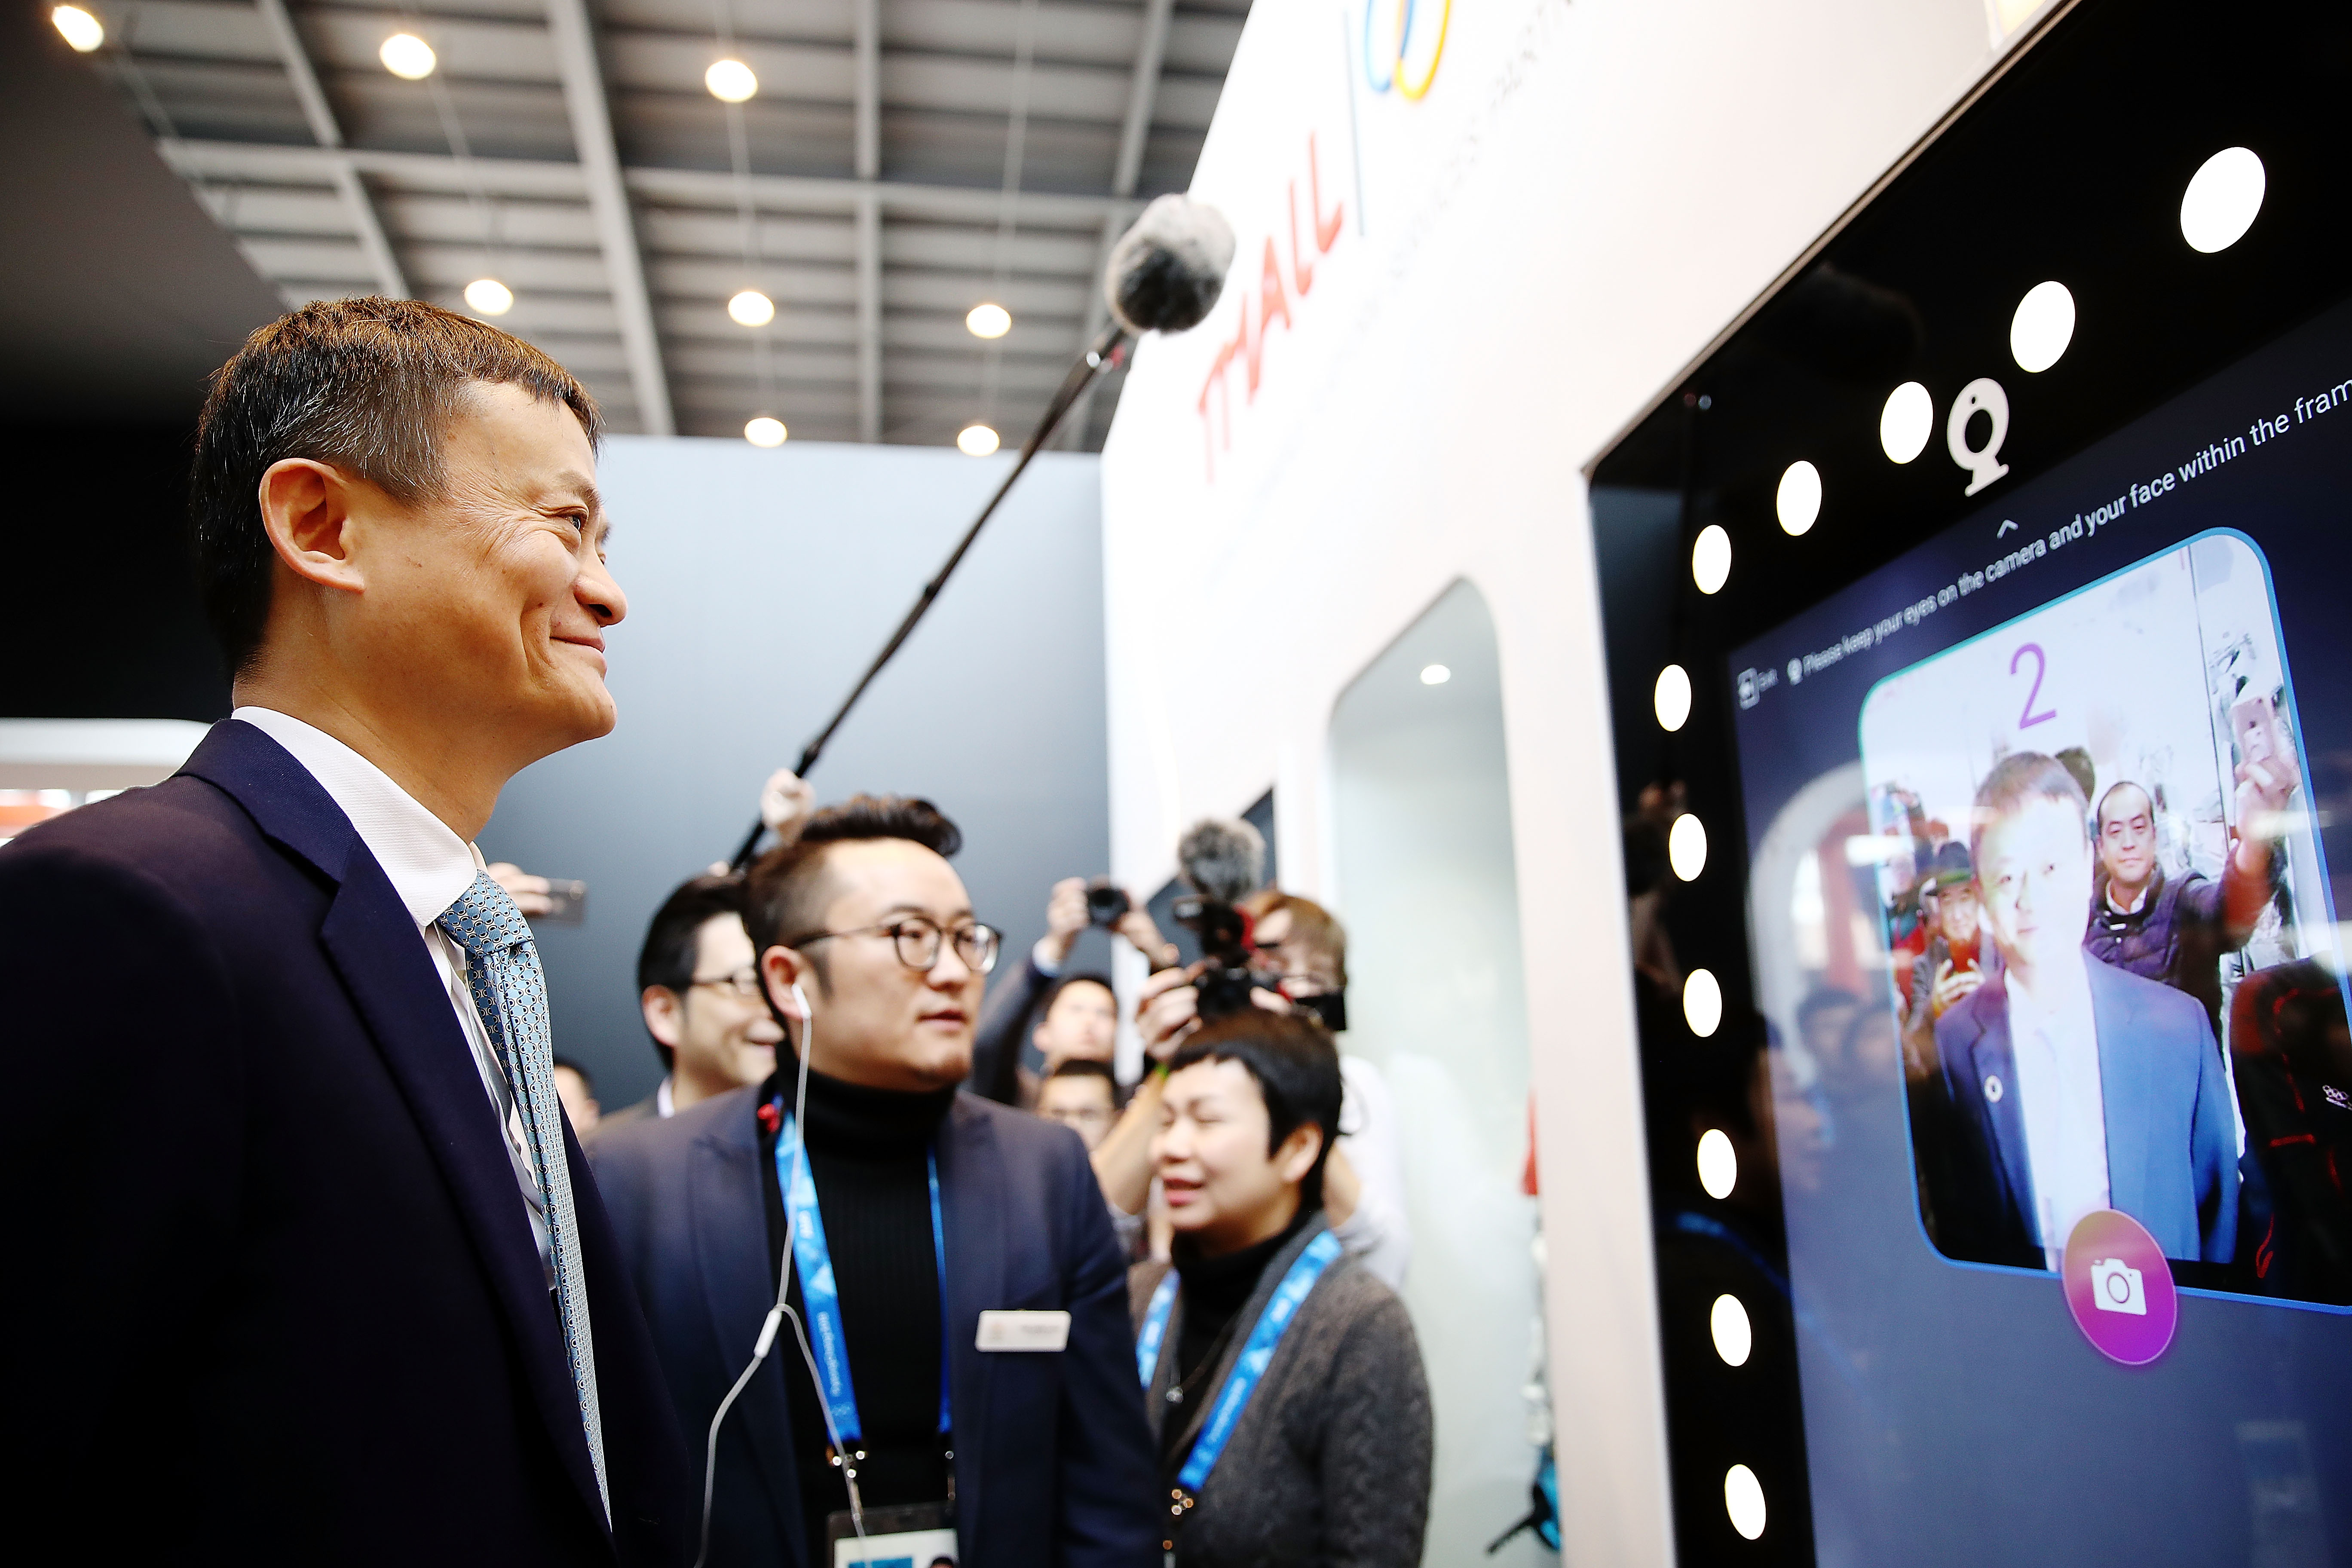 Alibaba Group Chairman Jack Ma at the Olympic Showcase